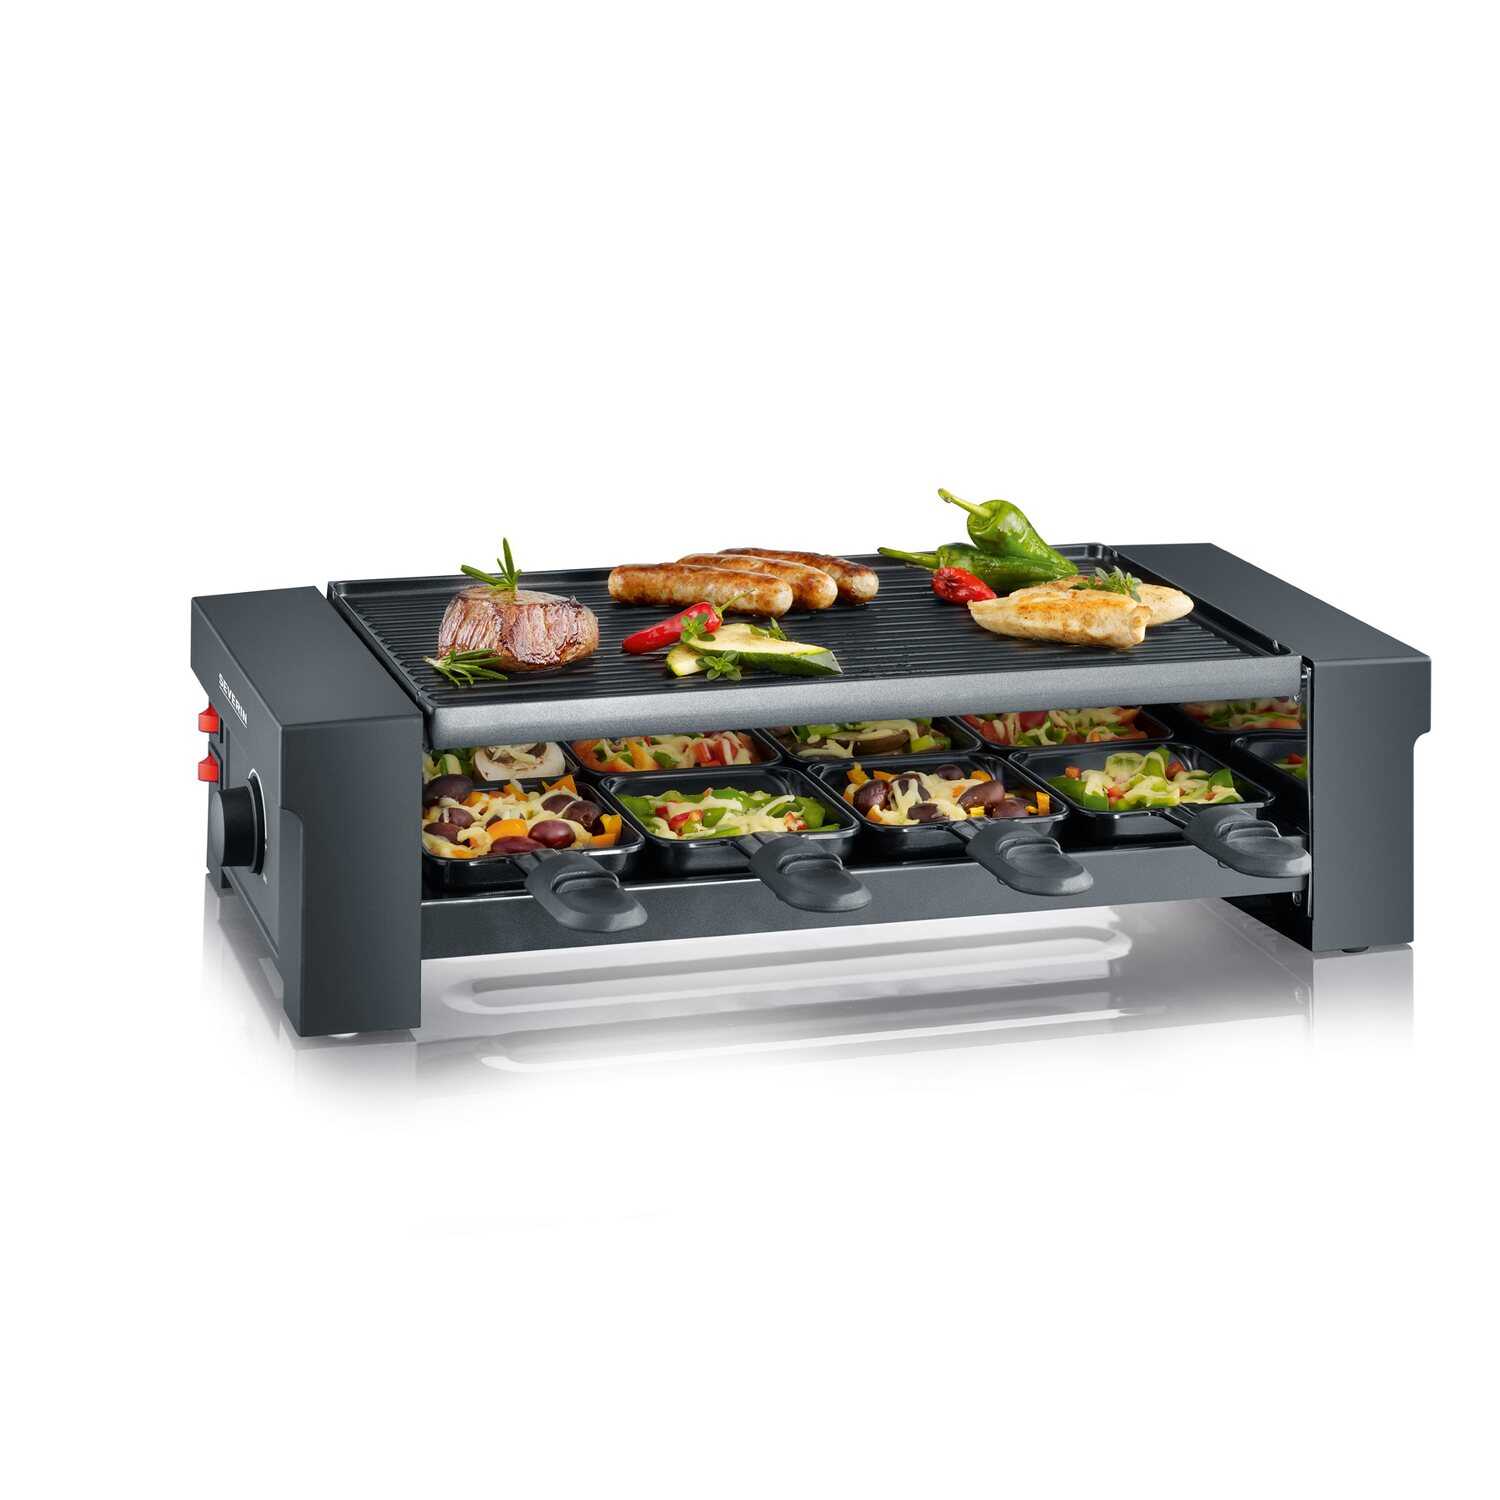 severin pizza raclette grill rg2687 schwarz kaufen bei obi. Black Bedroom Furniture Sets. Home Design Ideas